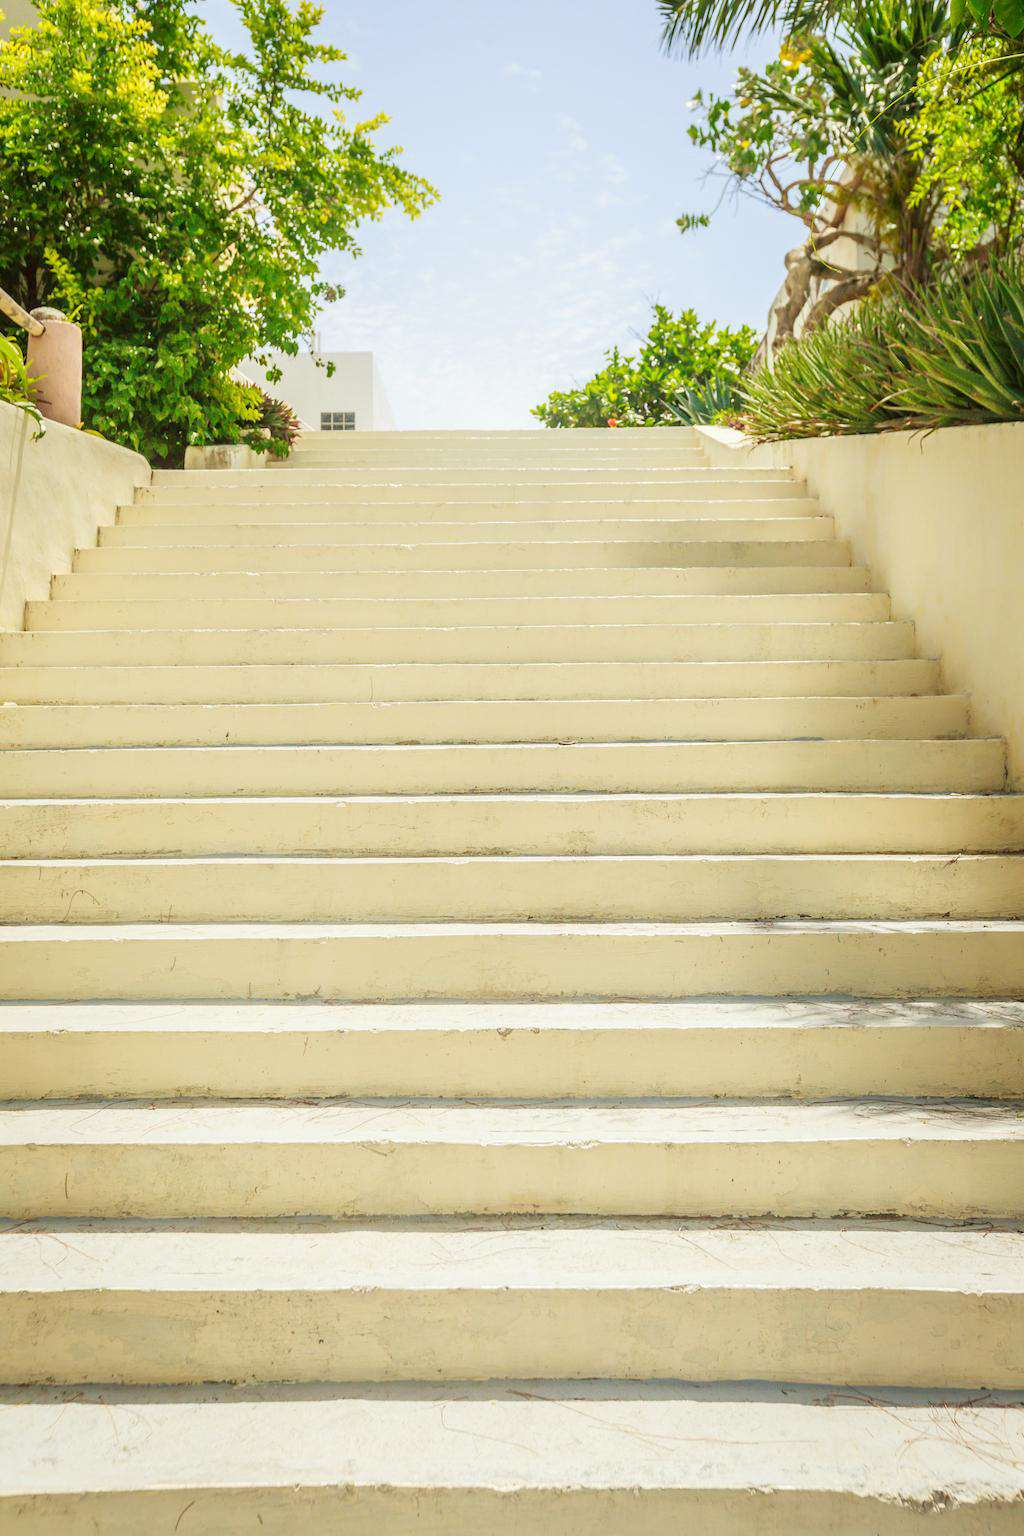 Stairs leading up to Casa Oasis